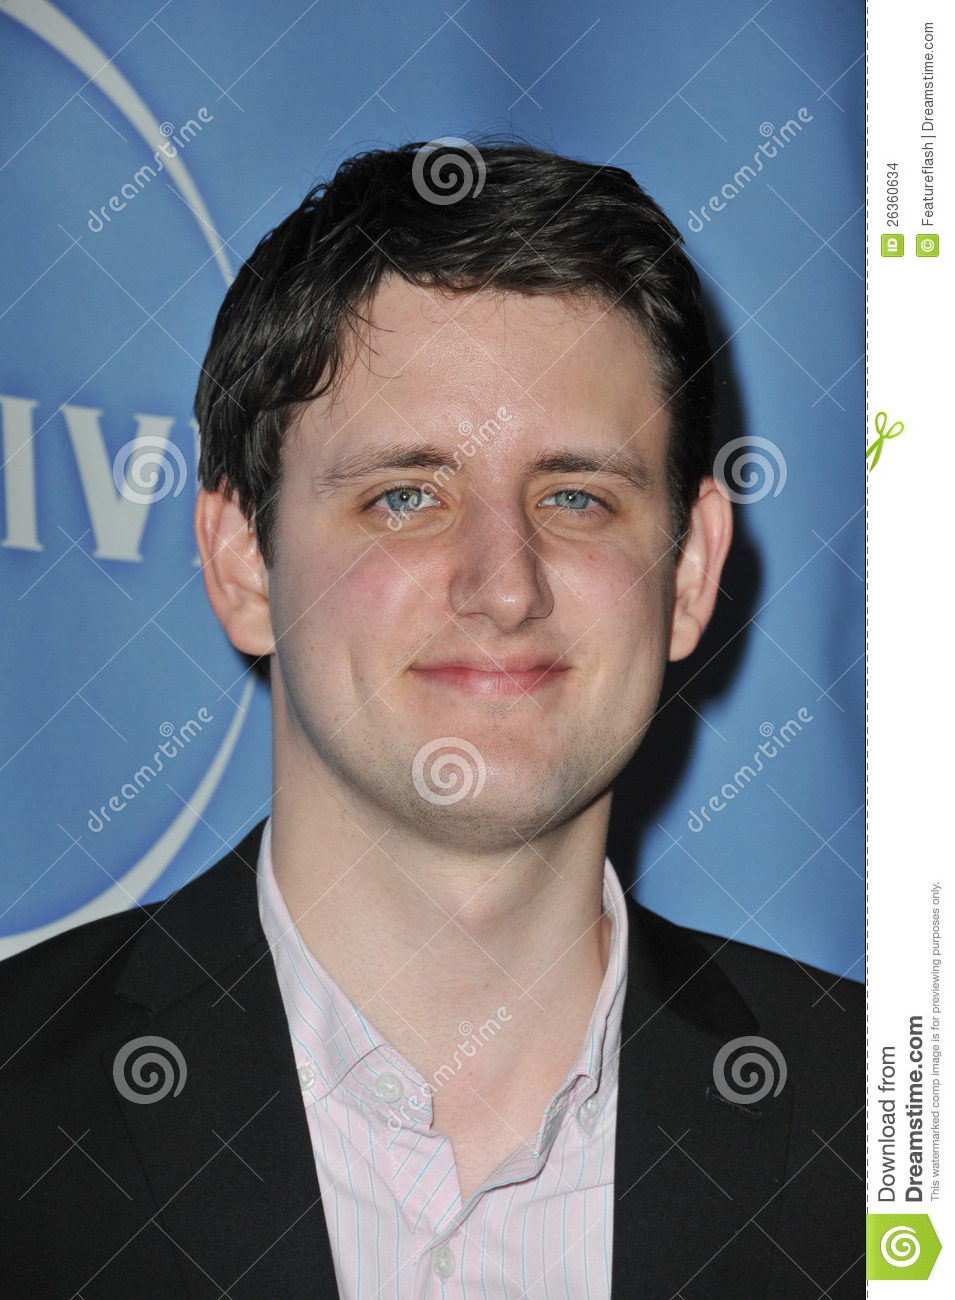 zach woods actor twitter